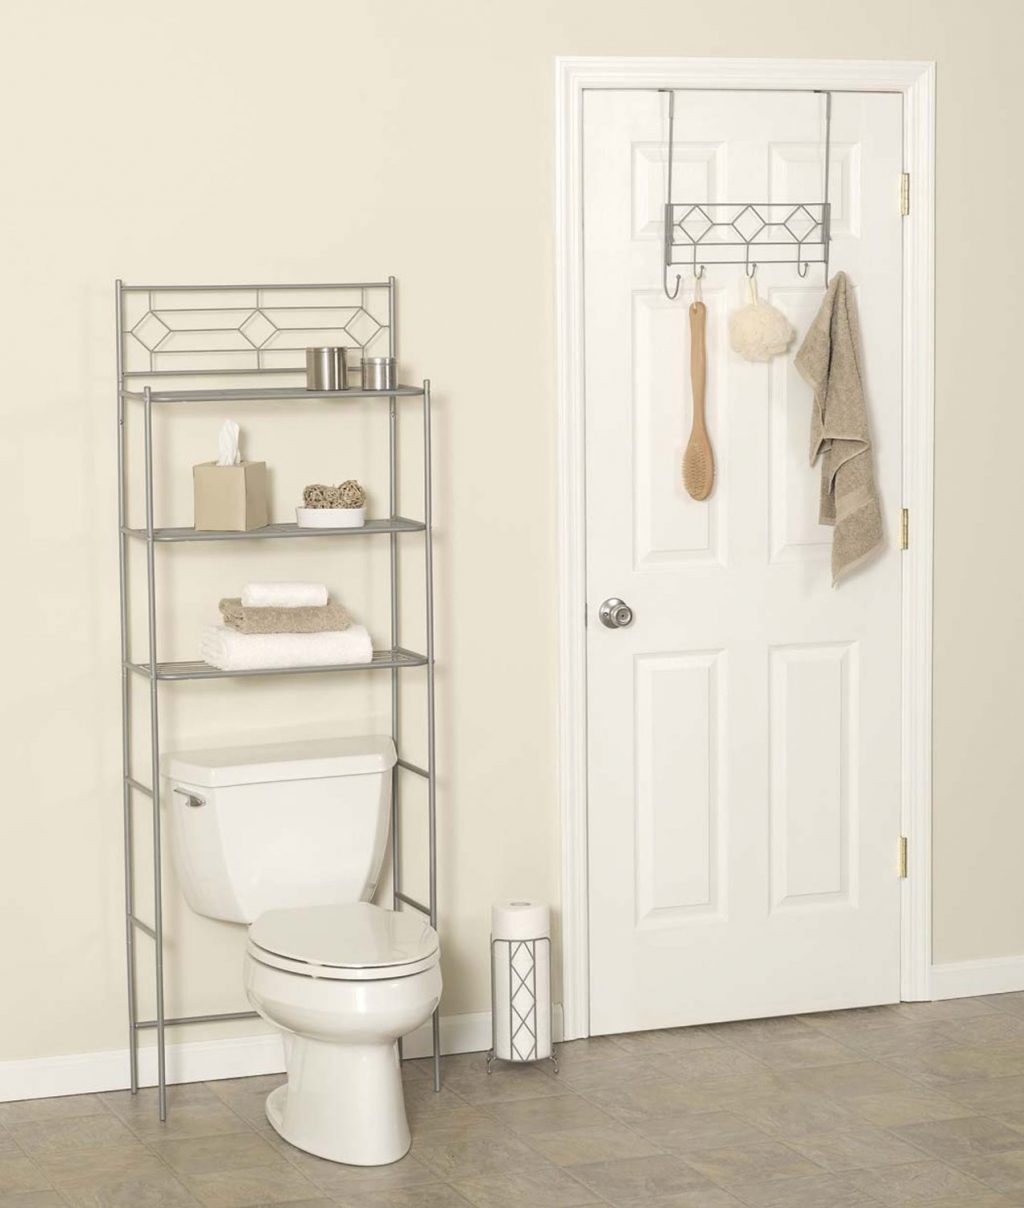 Bathroom Storage Where To Hang Wet Towels In Small Wall Shelves